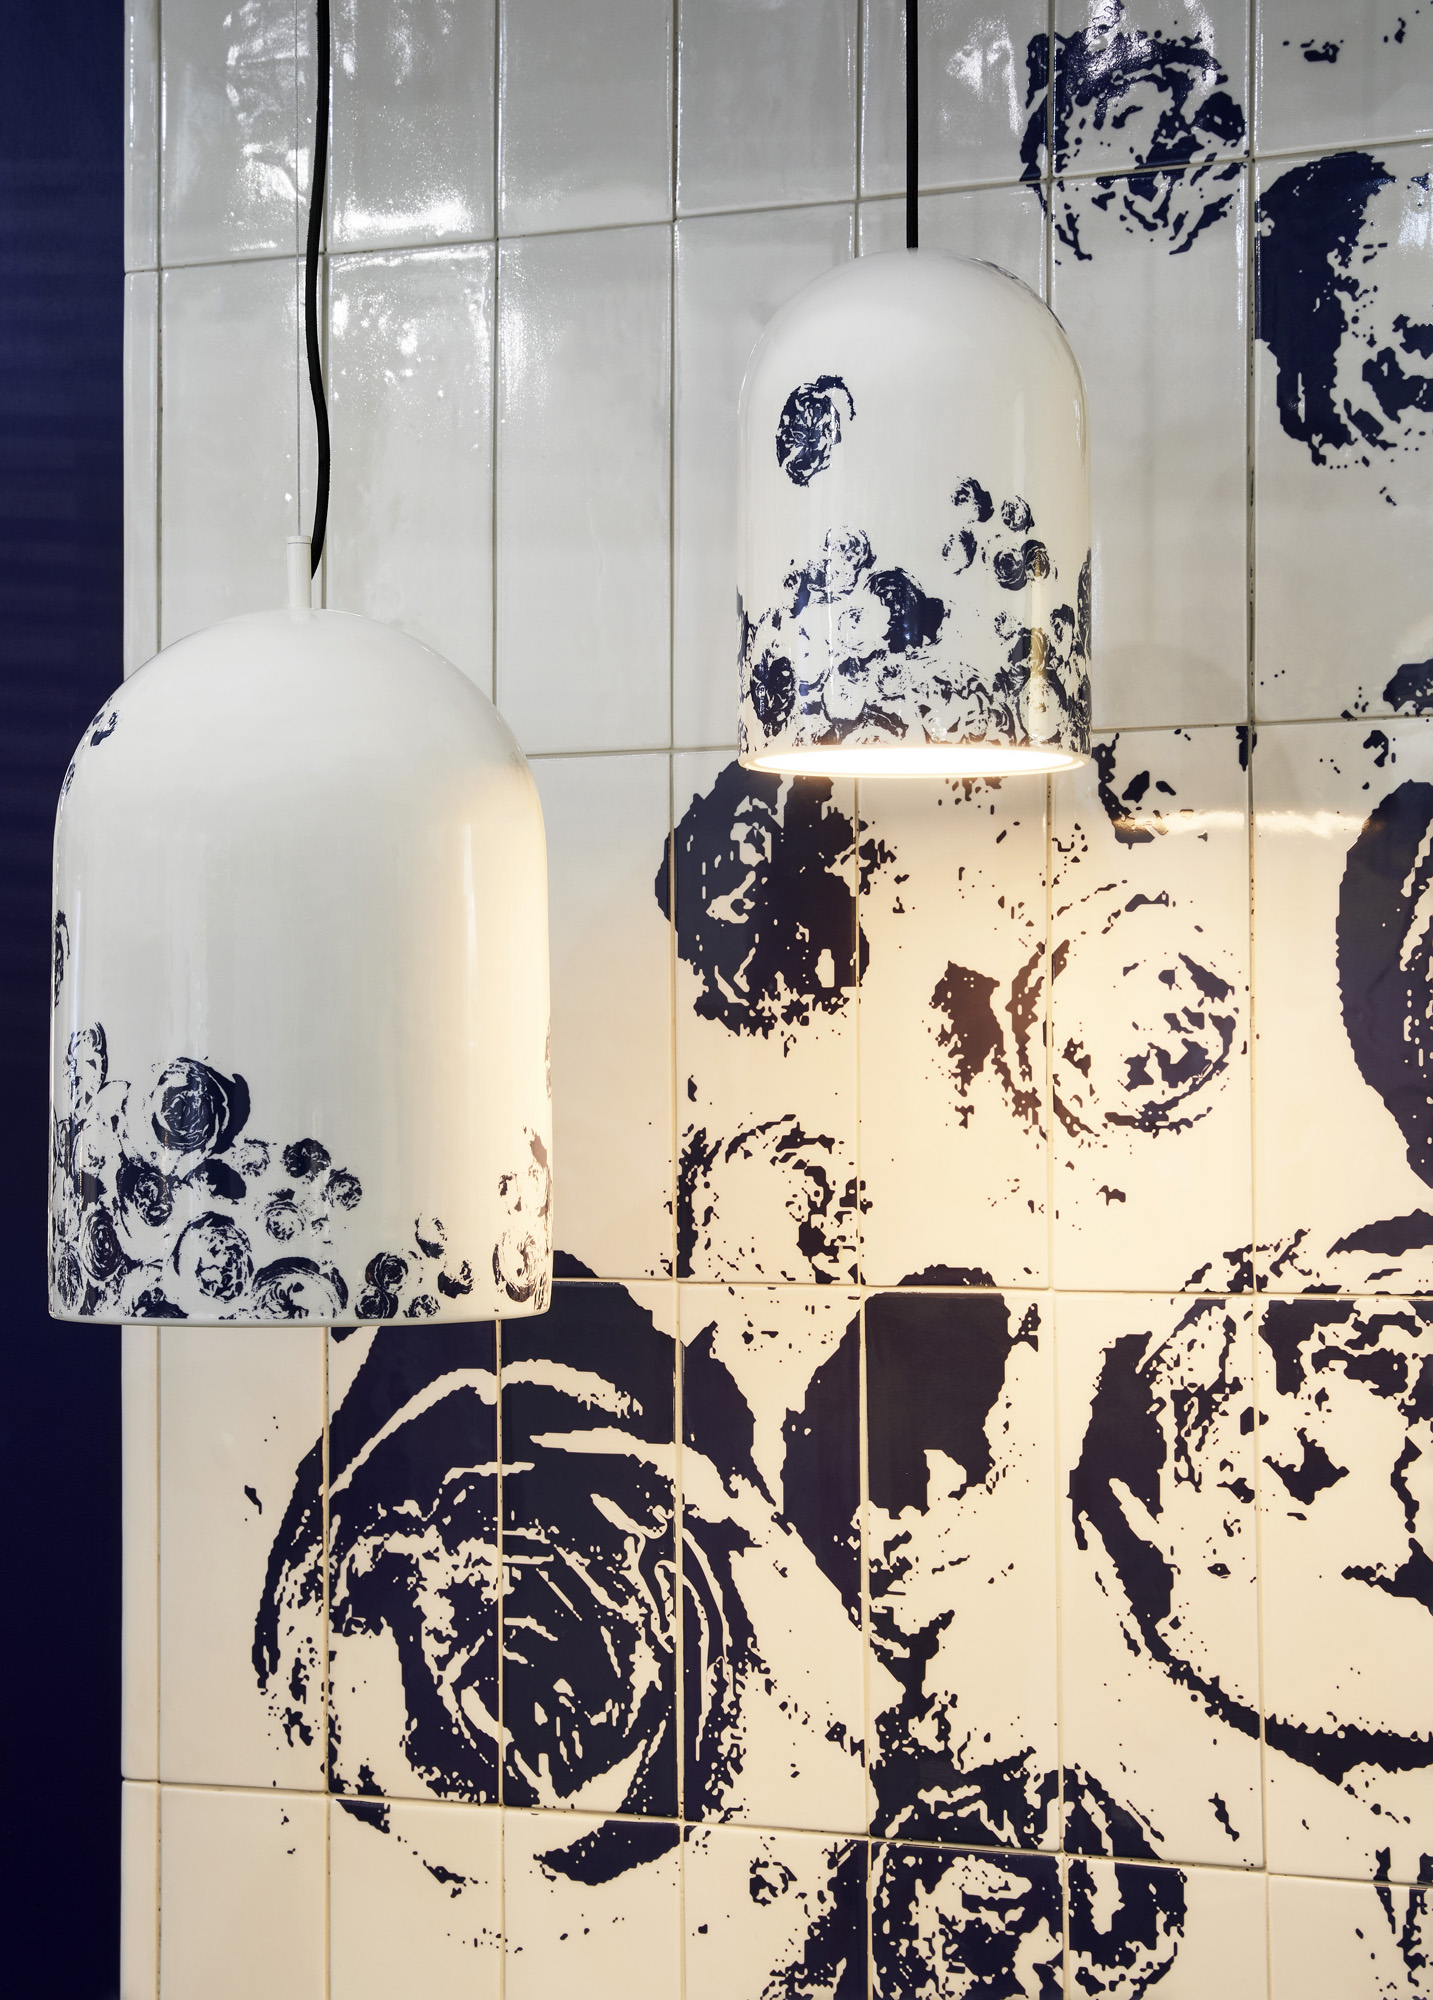 Abstracted natural prints in blue on white adorn both wall tiles and pendant lights by Porcelain Bear.Photograph by Haydn Cattach .